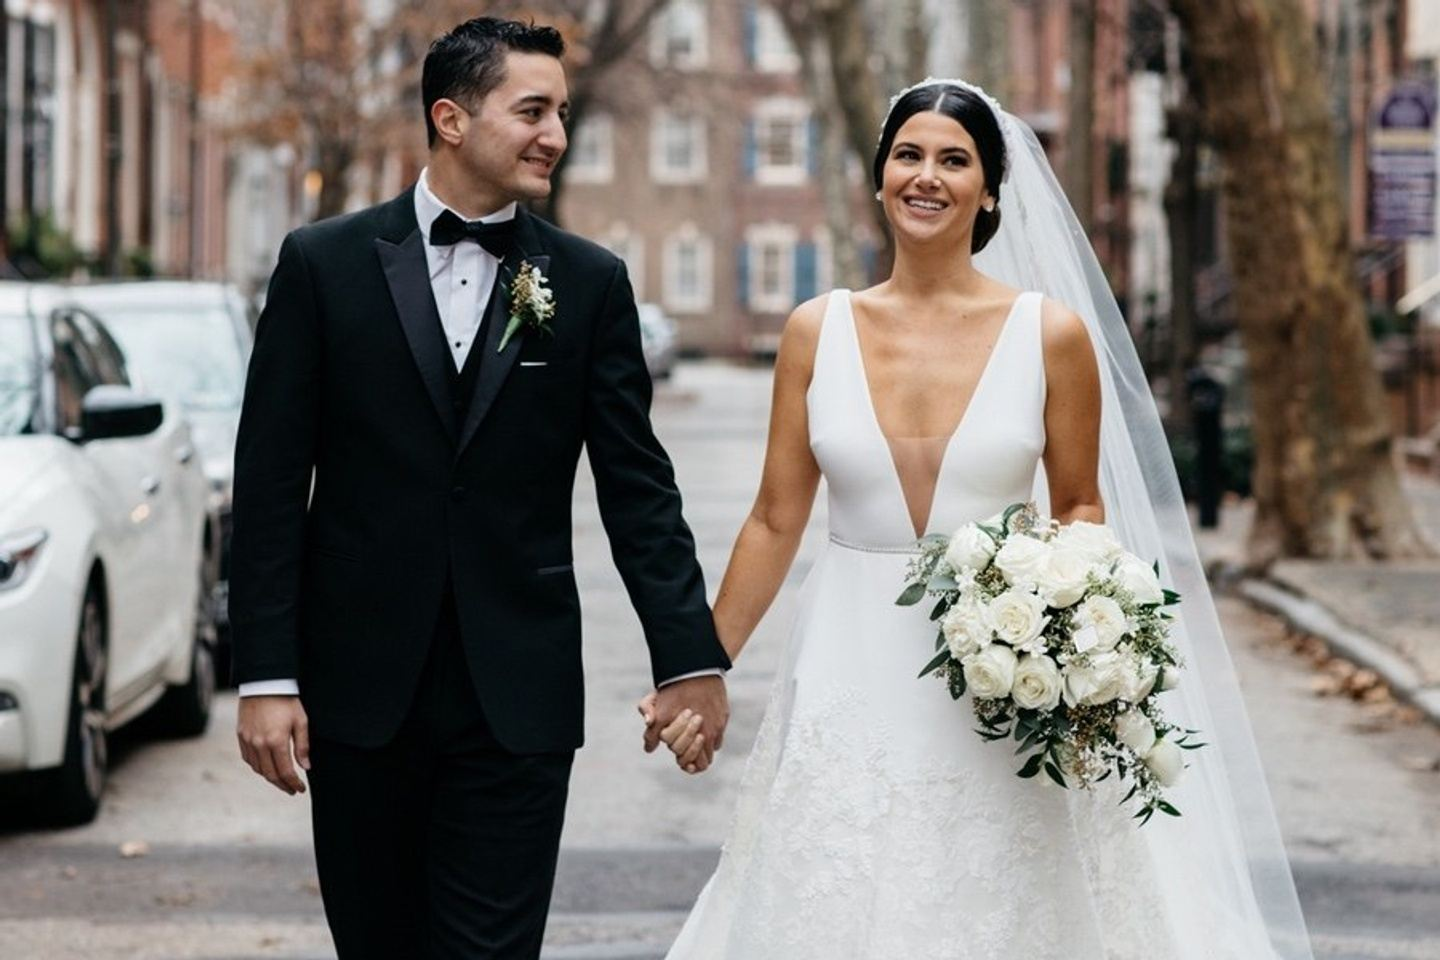 Wedding Tour - Looking for the Best Destination Wedding Locations?